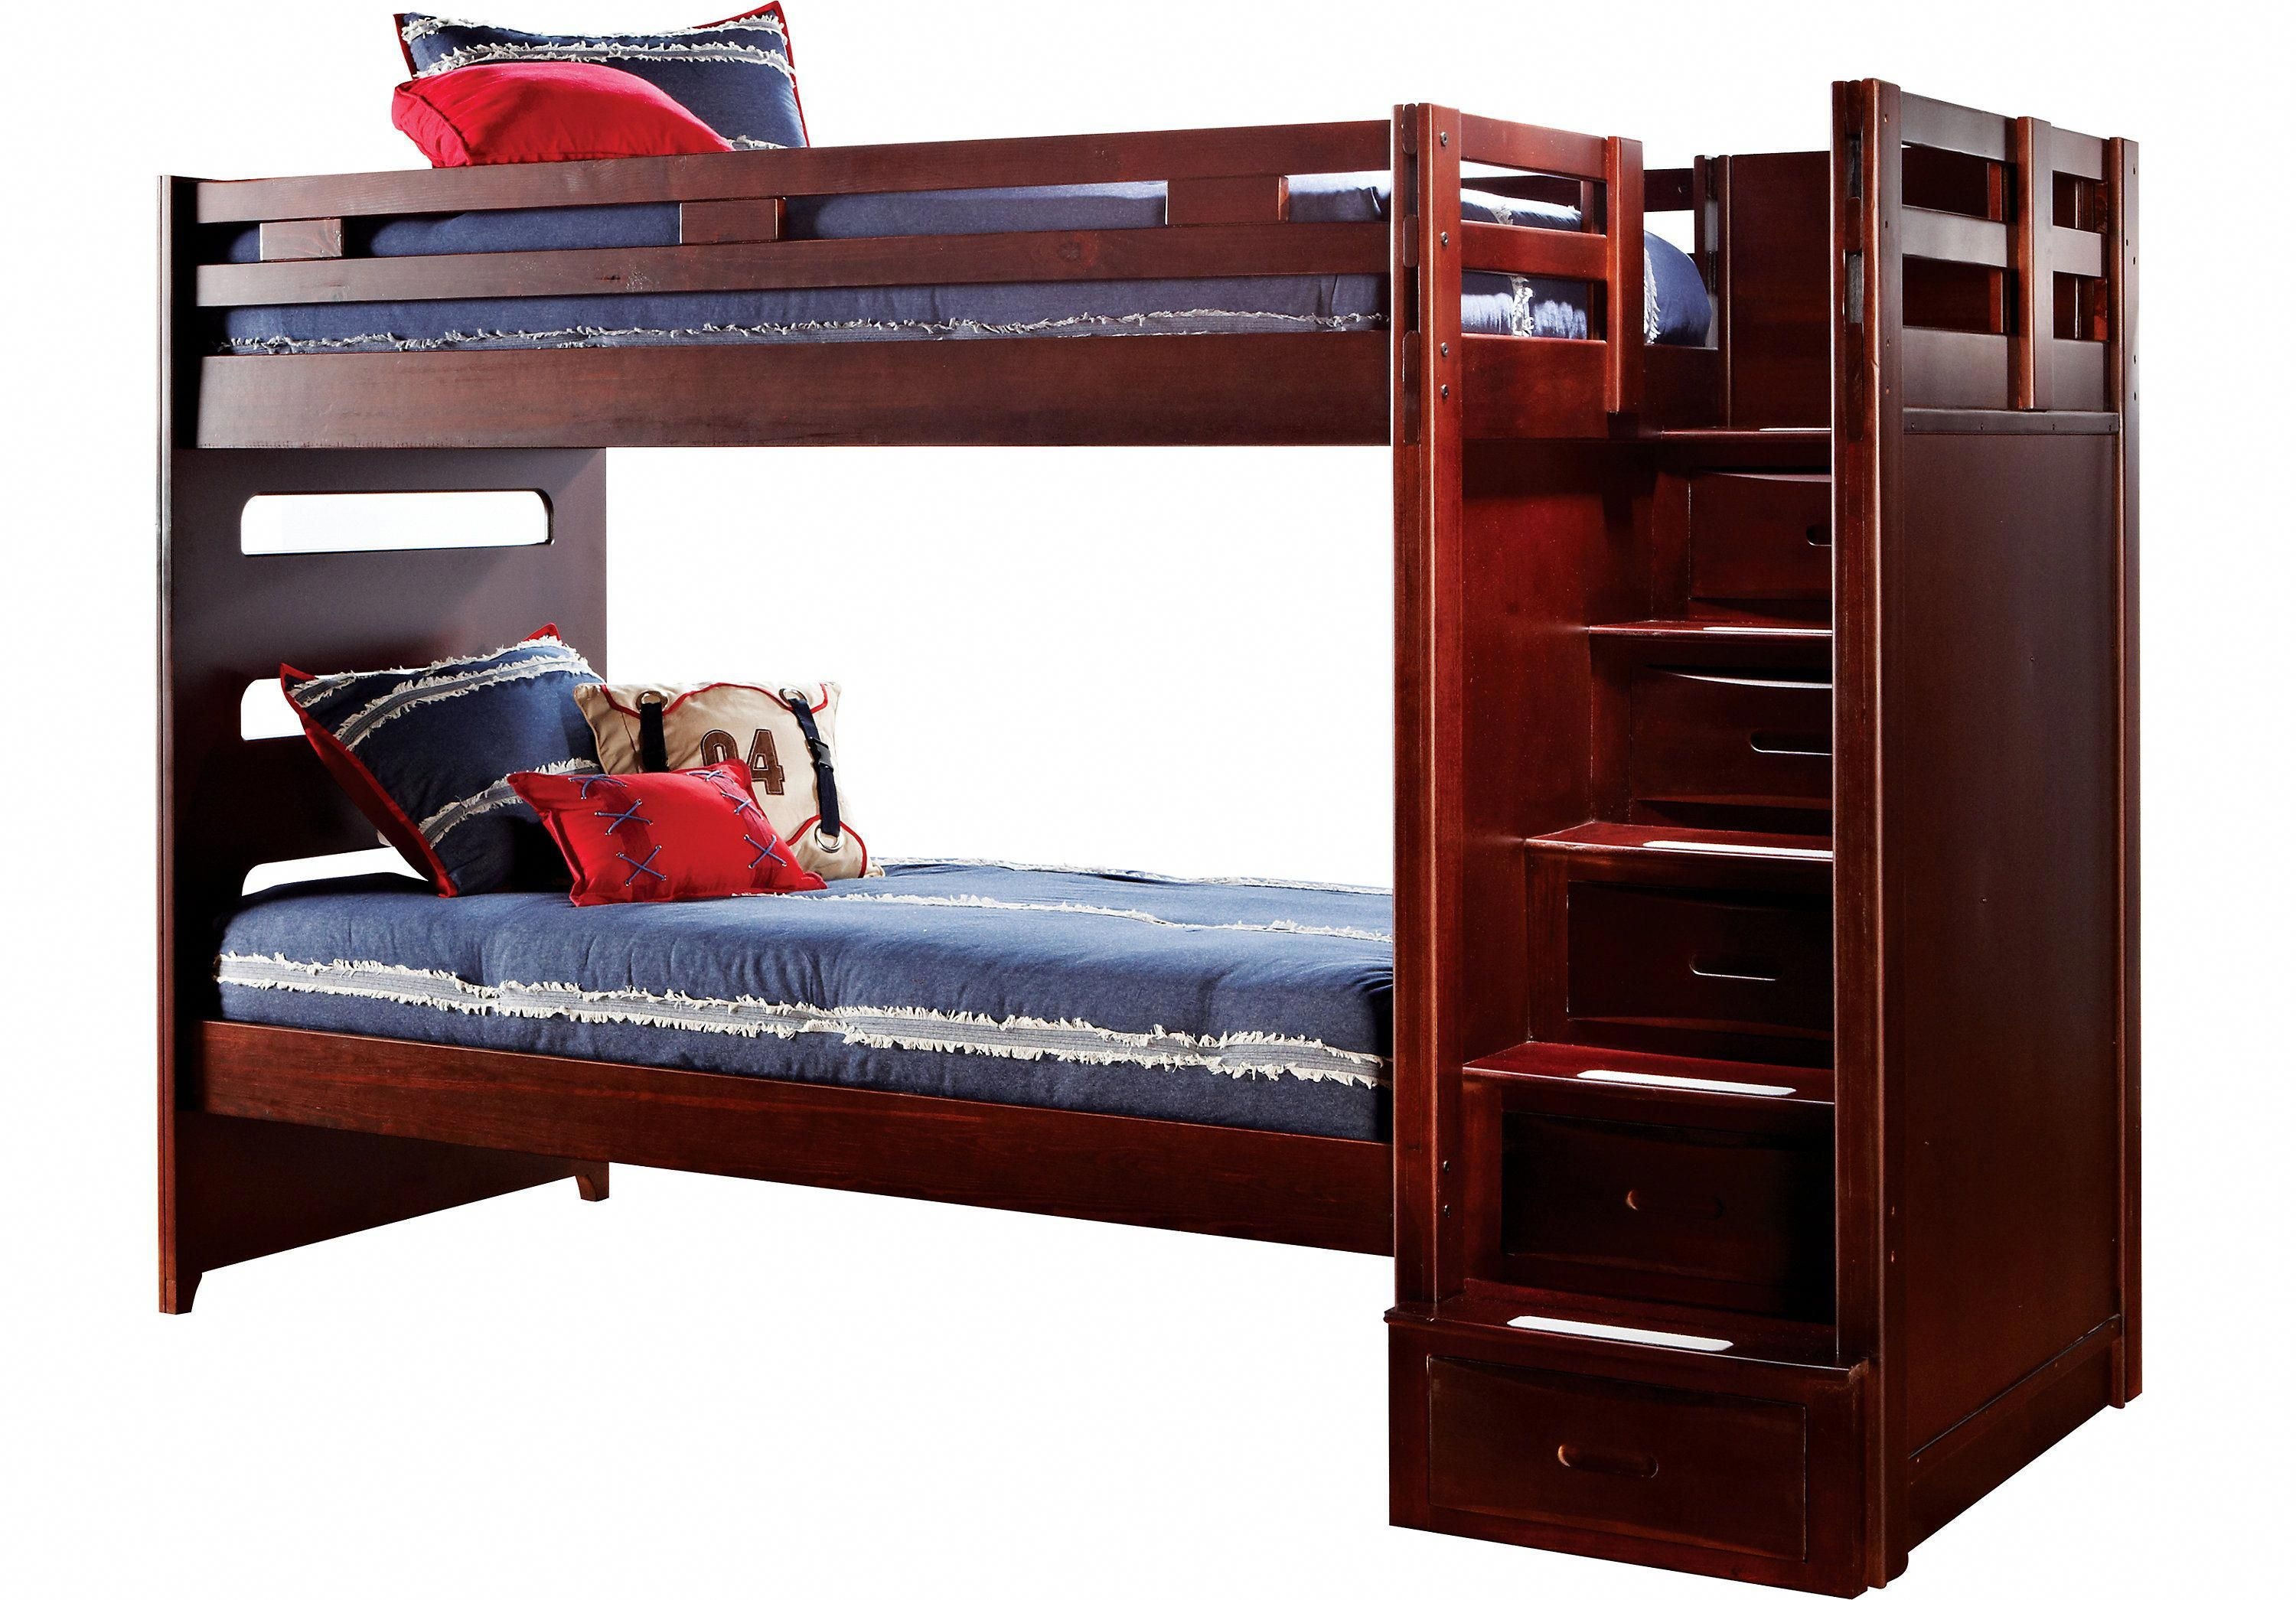 Picture Of Ivy League Cherry Twin Step Bunk Bed From Beds